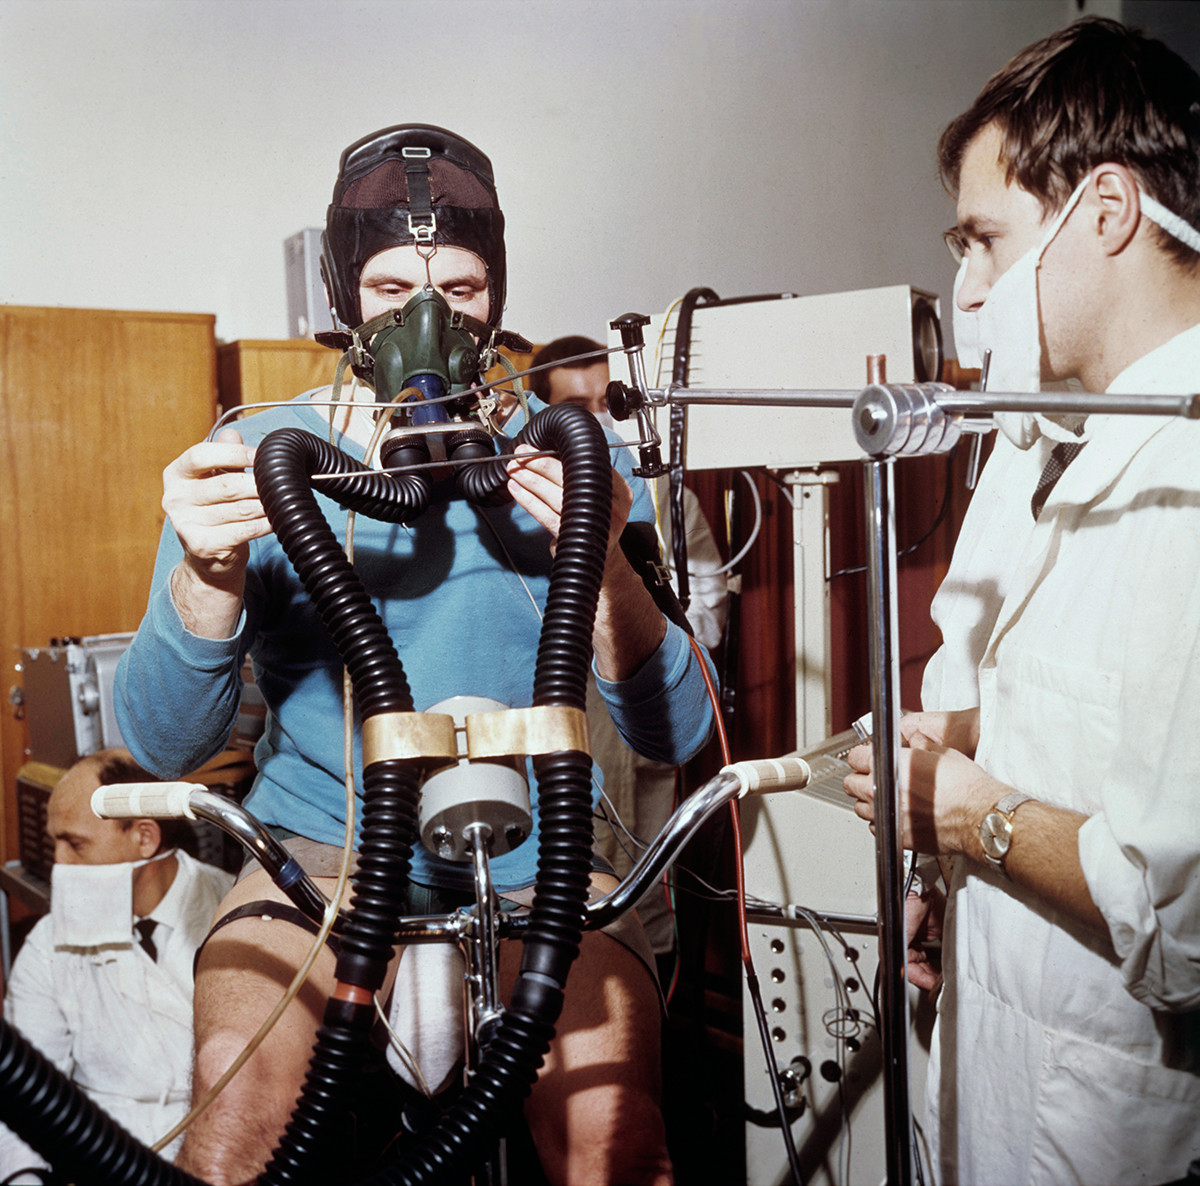 Test on the bicycle ergometer in 1968.